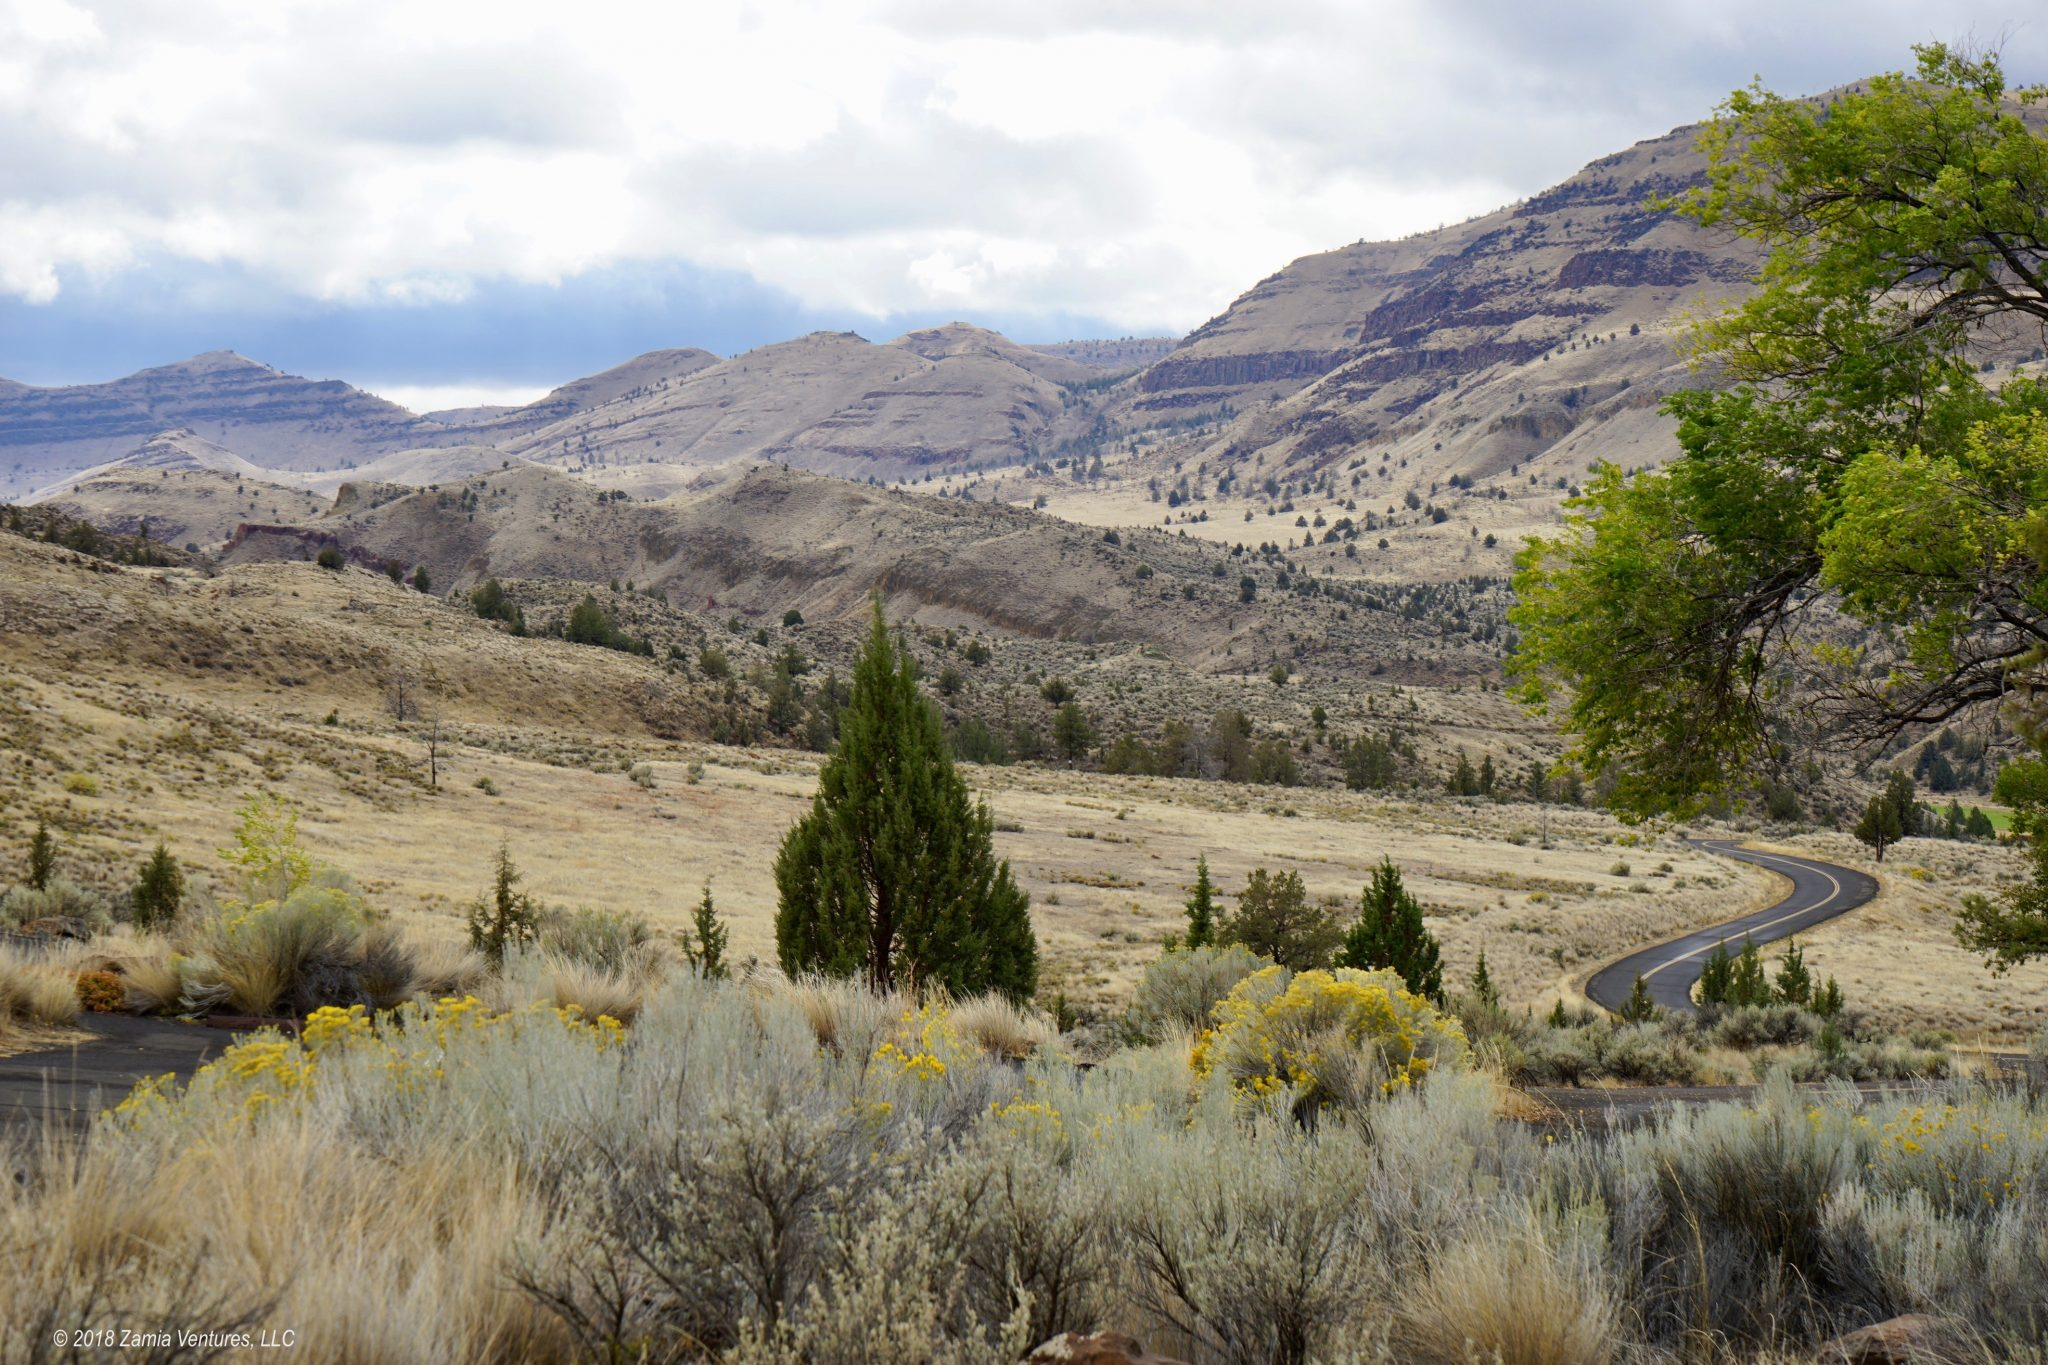 Strange Isolation at John Day Fossil Beds